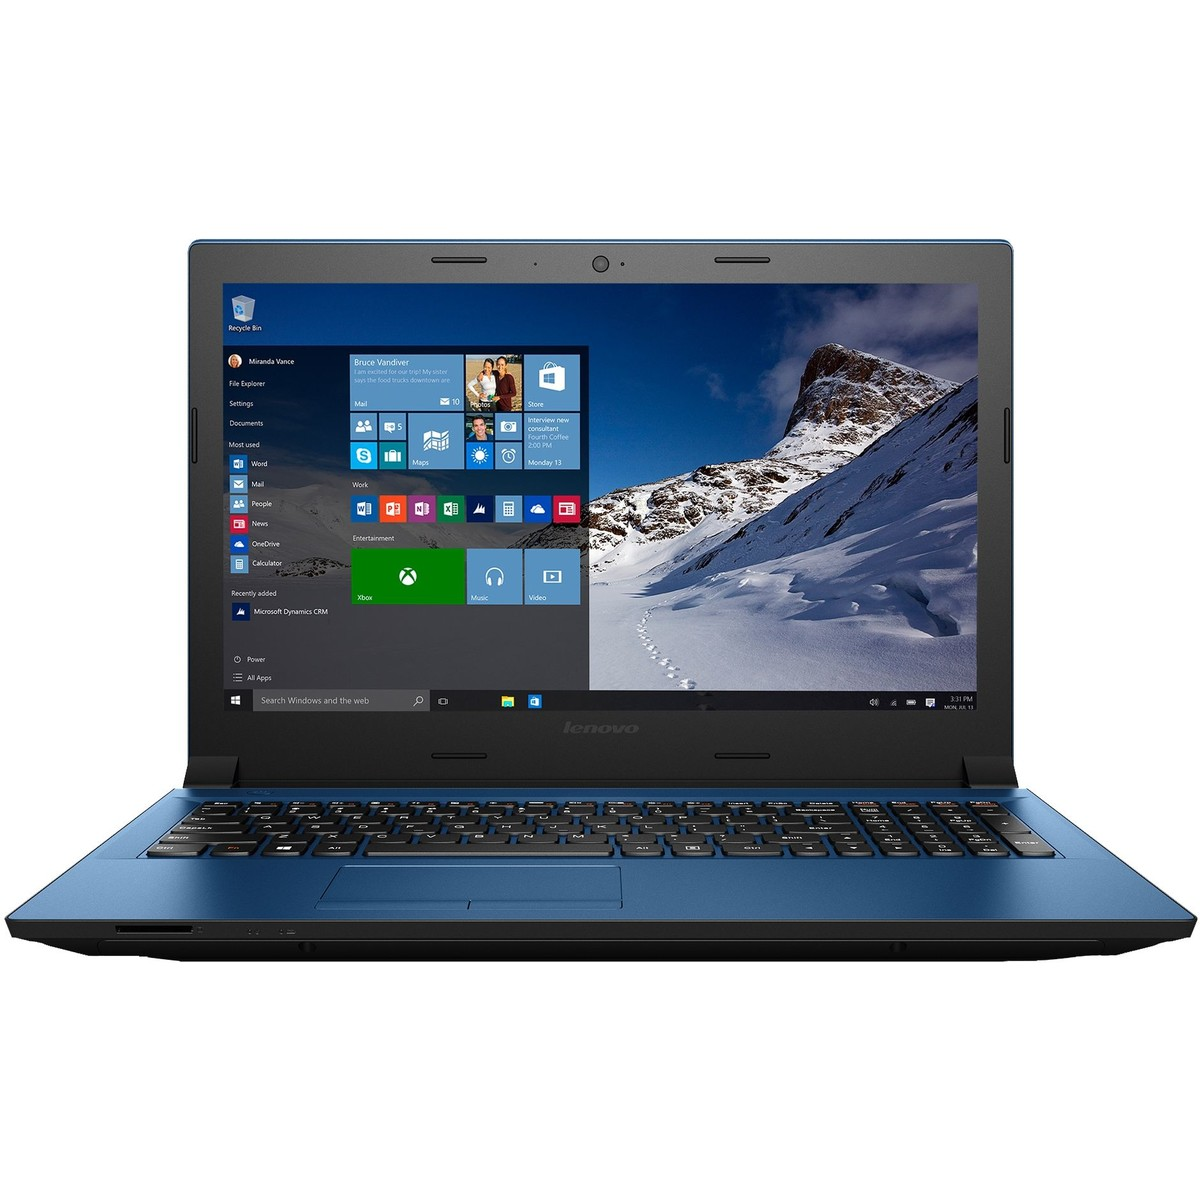 Laptop Renew Ideapad 305-15IHW Intel Core i3-4005U 1.7 GHz 4GB DDR3 1TB HDD Webcam Windows 8.1